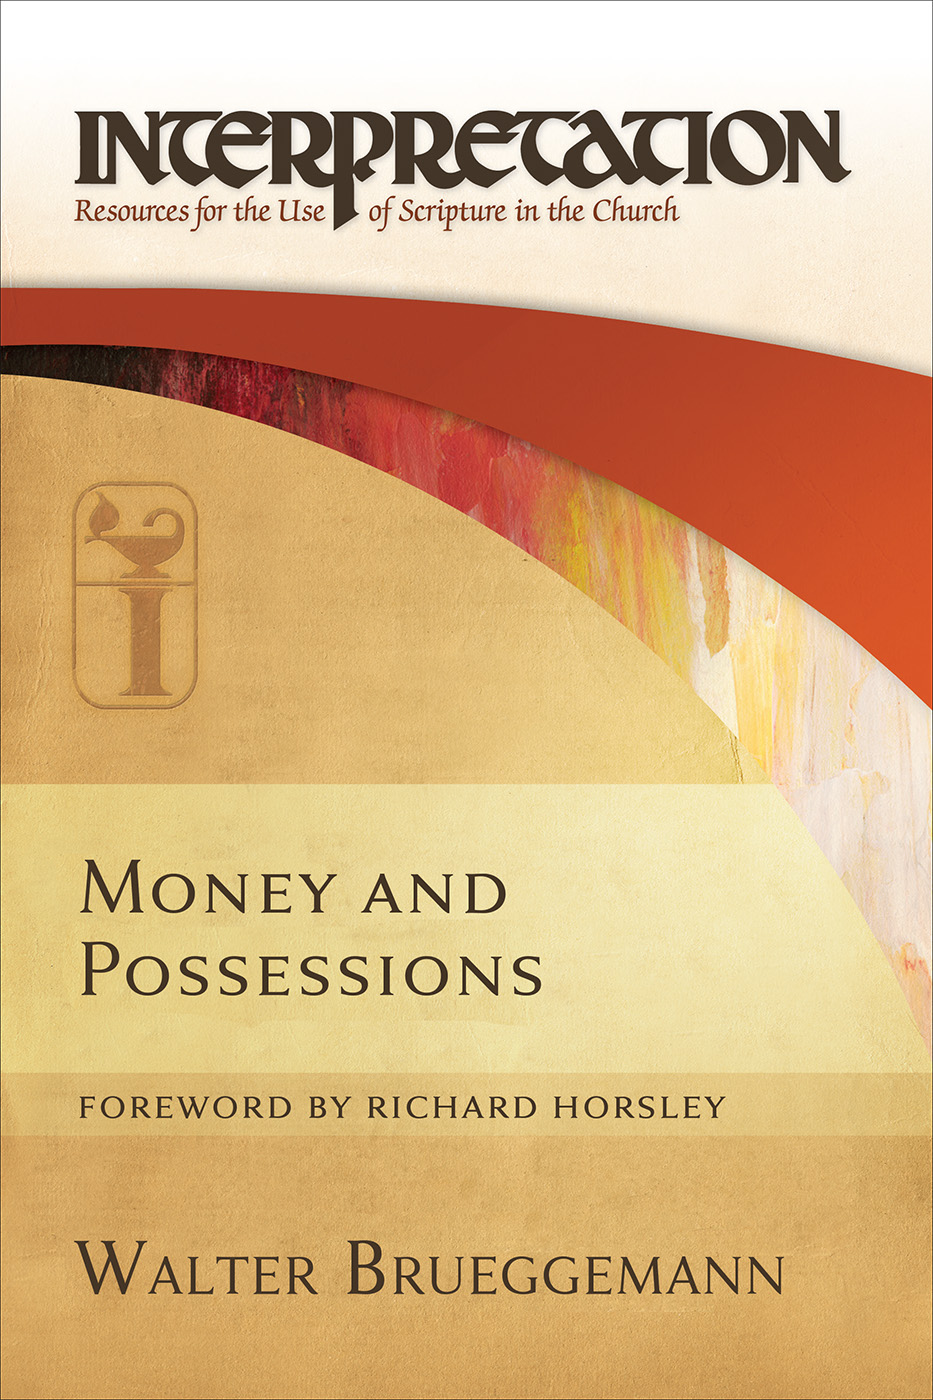 Money and Possessions